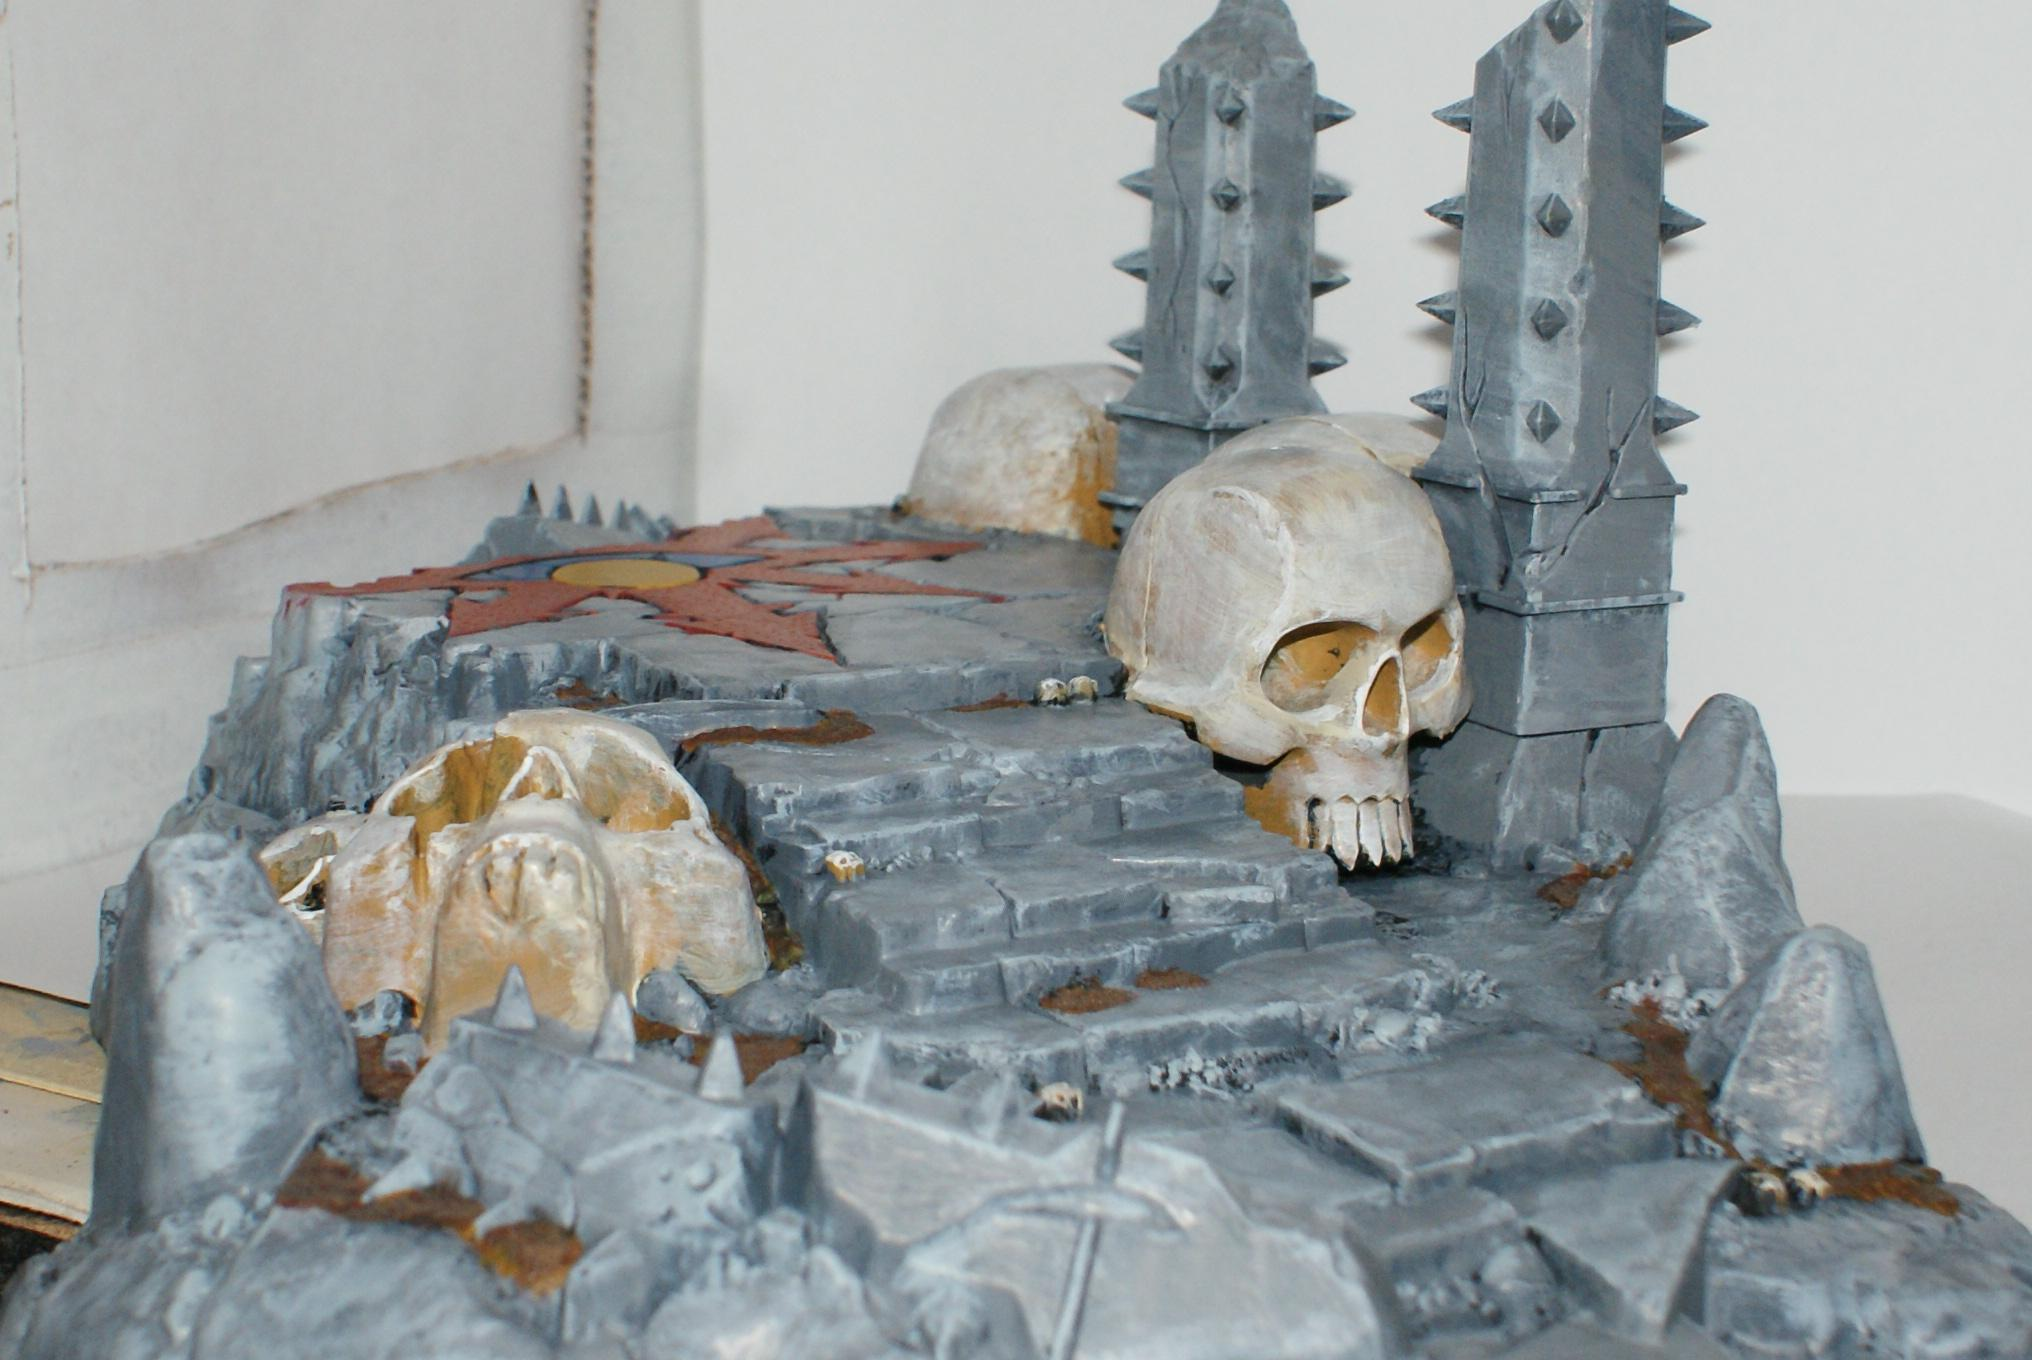 Temple Of Skulls, Terrain